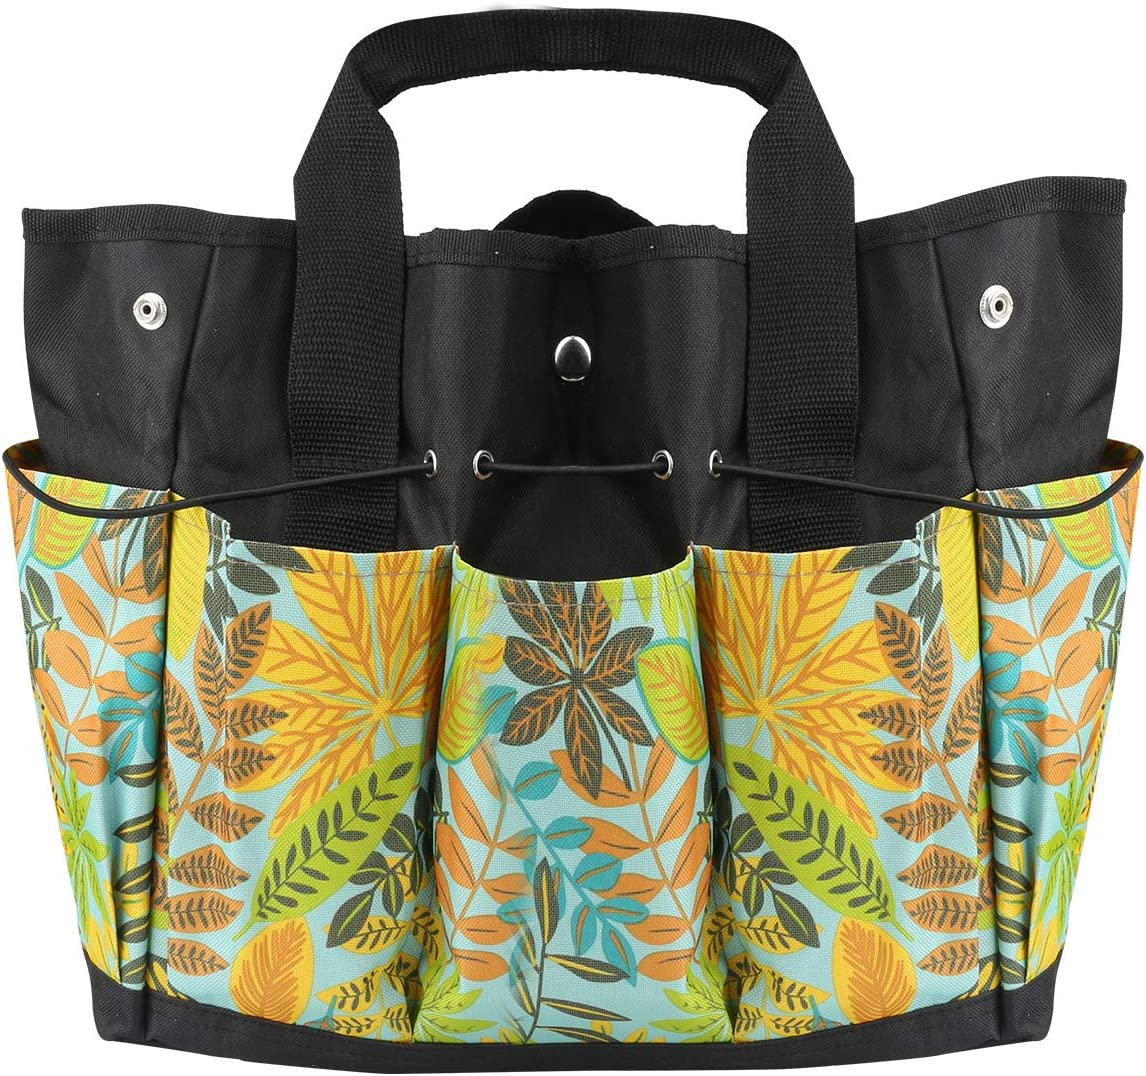 Mystery Garden Tool Tote Bag, Leaf Print Gardening Tool Tote Storage Bag with 8 Pockets, Heavy Duty Garden Tool Organizer Pouch Bag, Oxford Cloth Garden Bag for Women Men, Green (Tools Not Included)